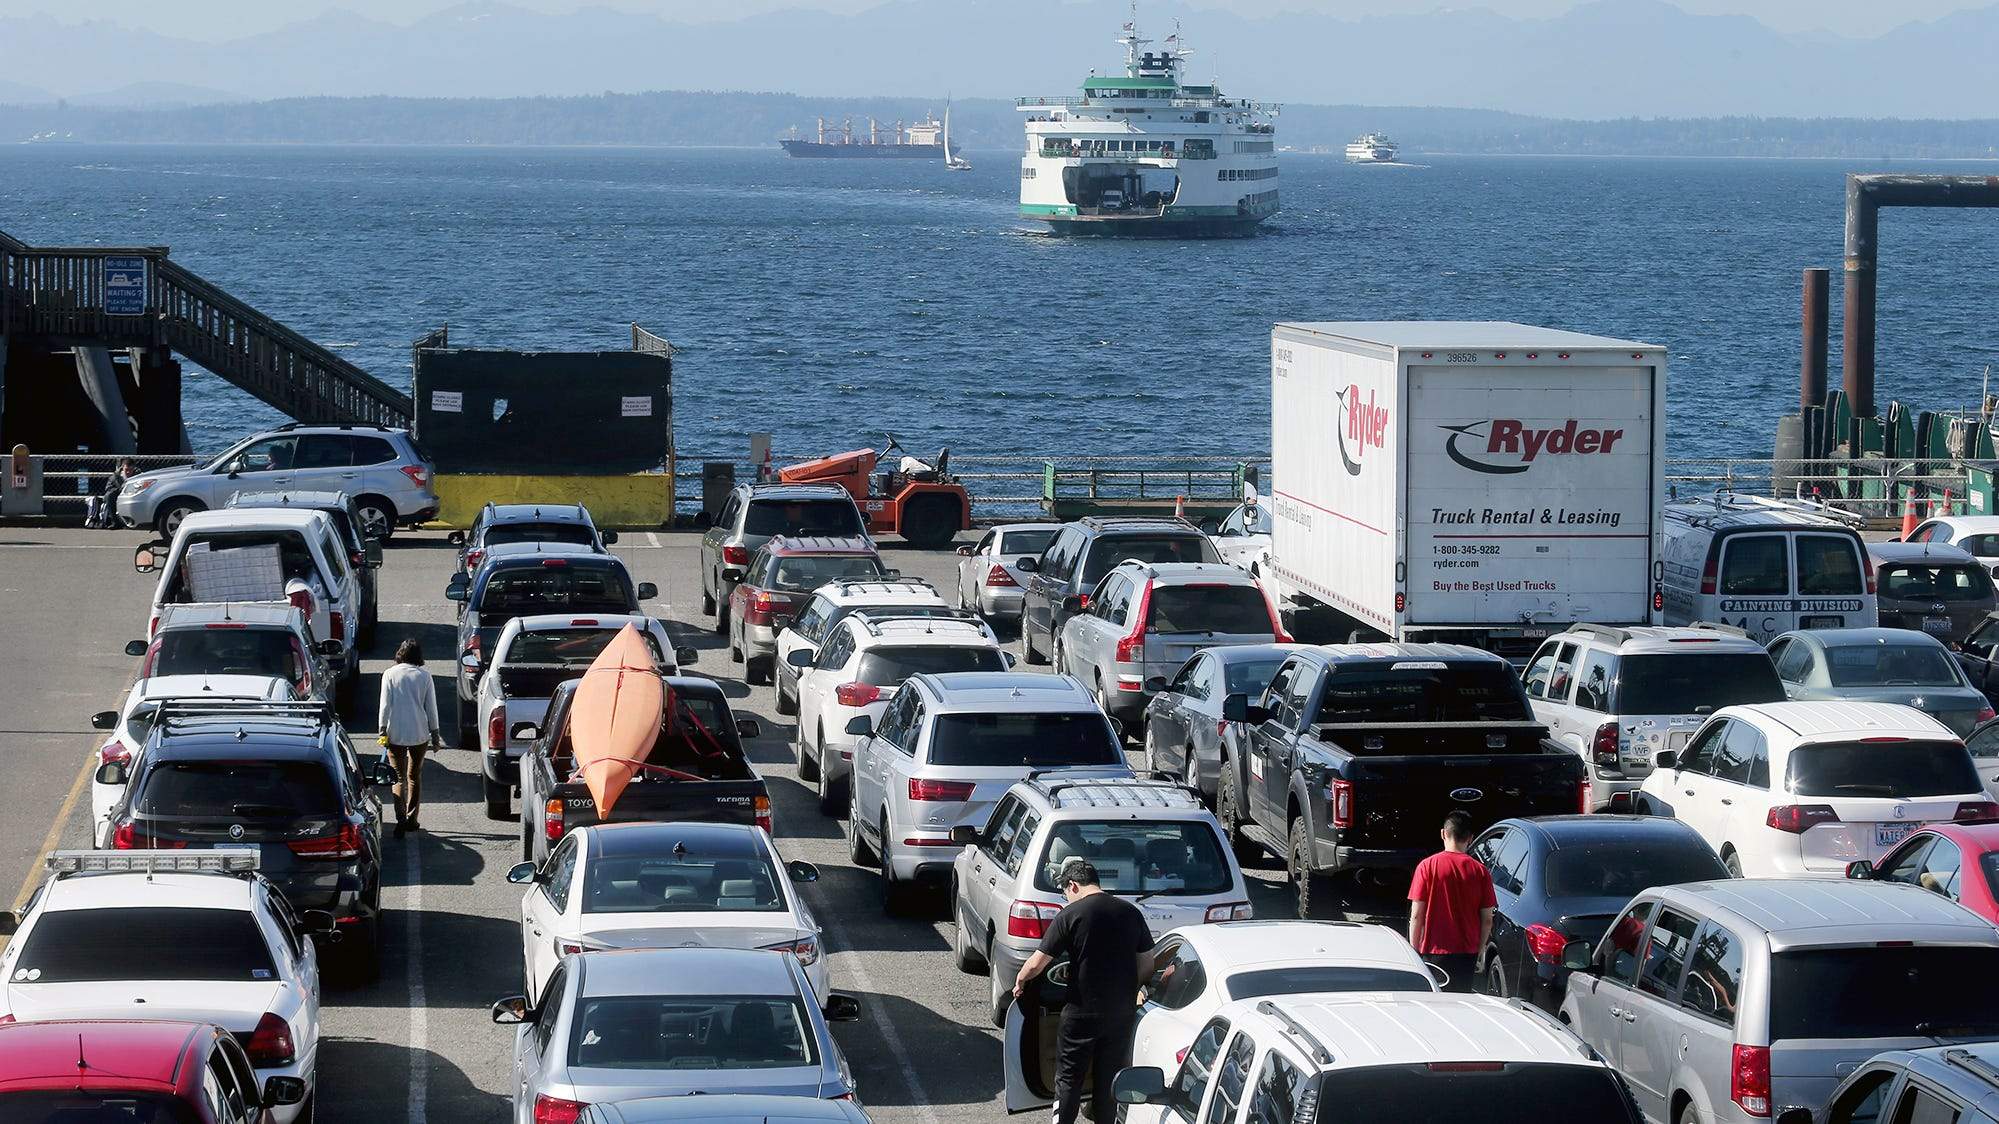 The Bainbridge car wait lot on Tuesday, September 25, 2018. Loading areas for Bremerton and Bainbridge ferries at Colman Dock in Seattle will swap this week as part of the construction.